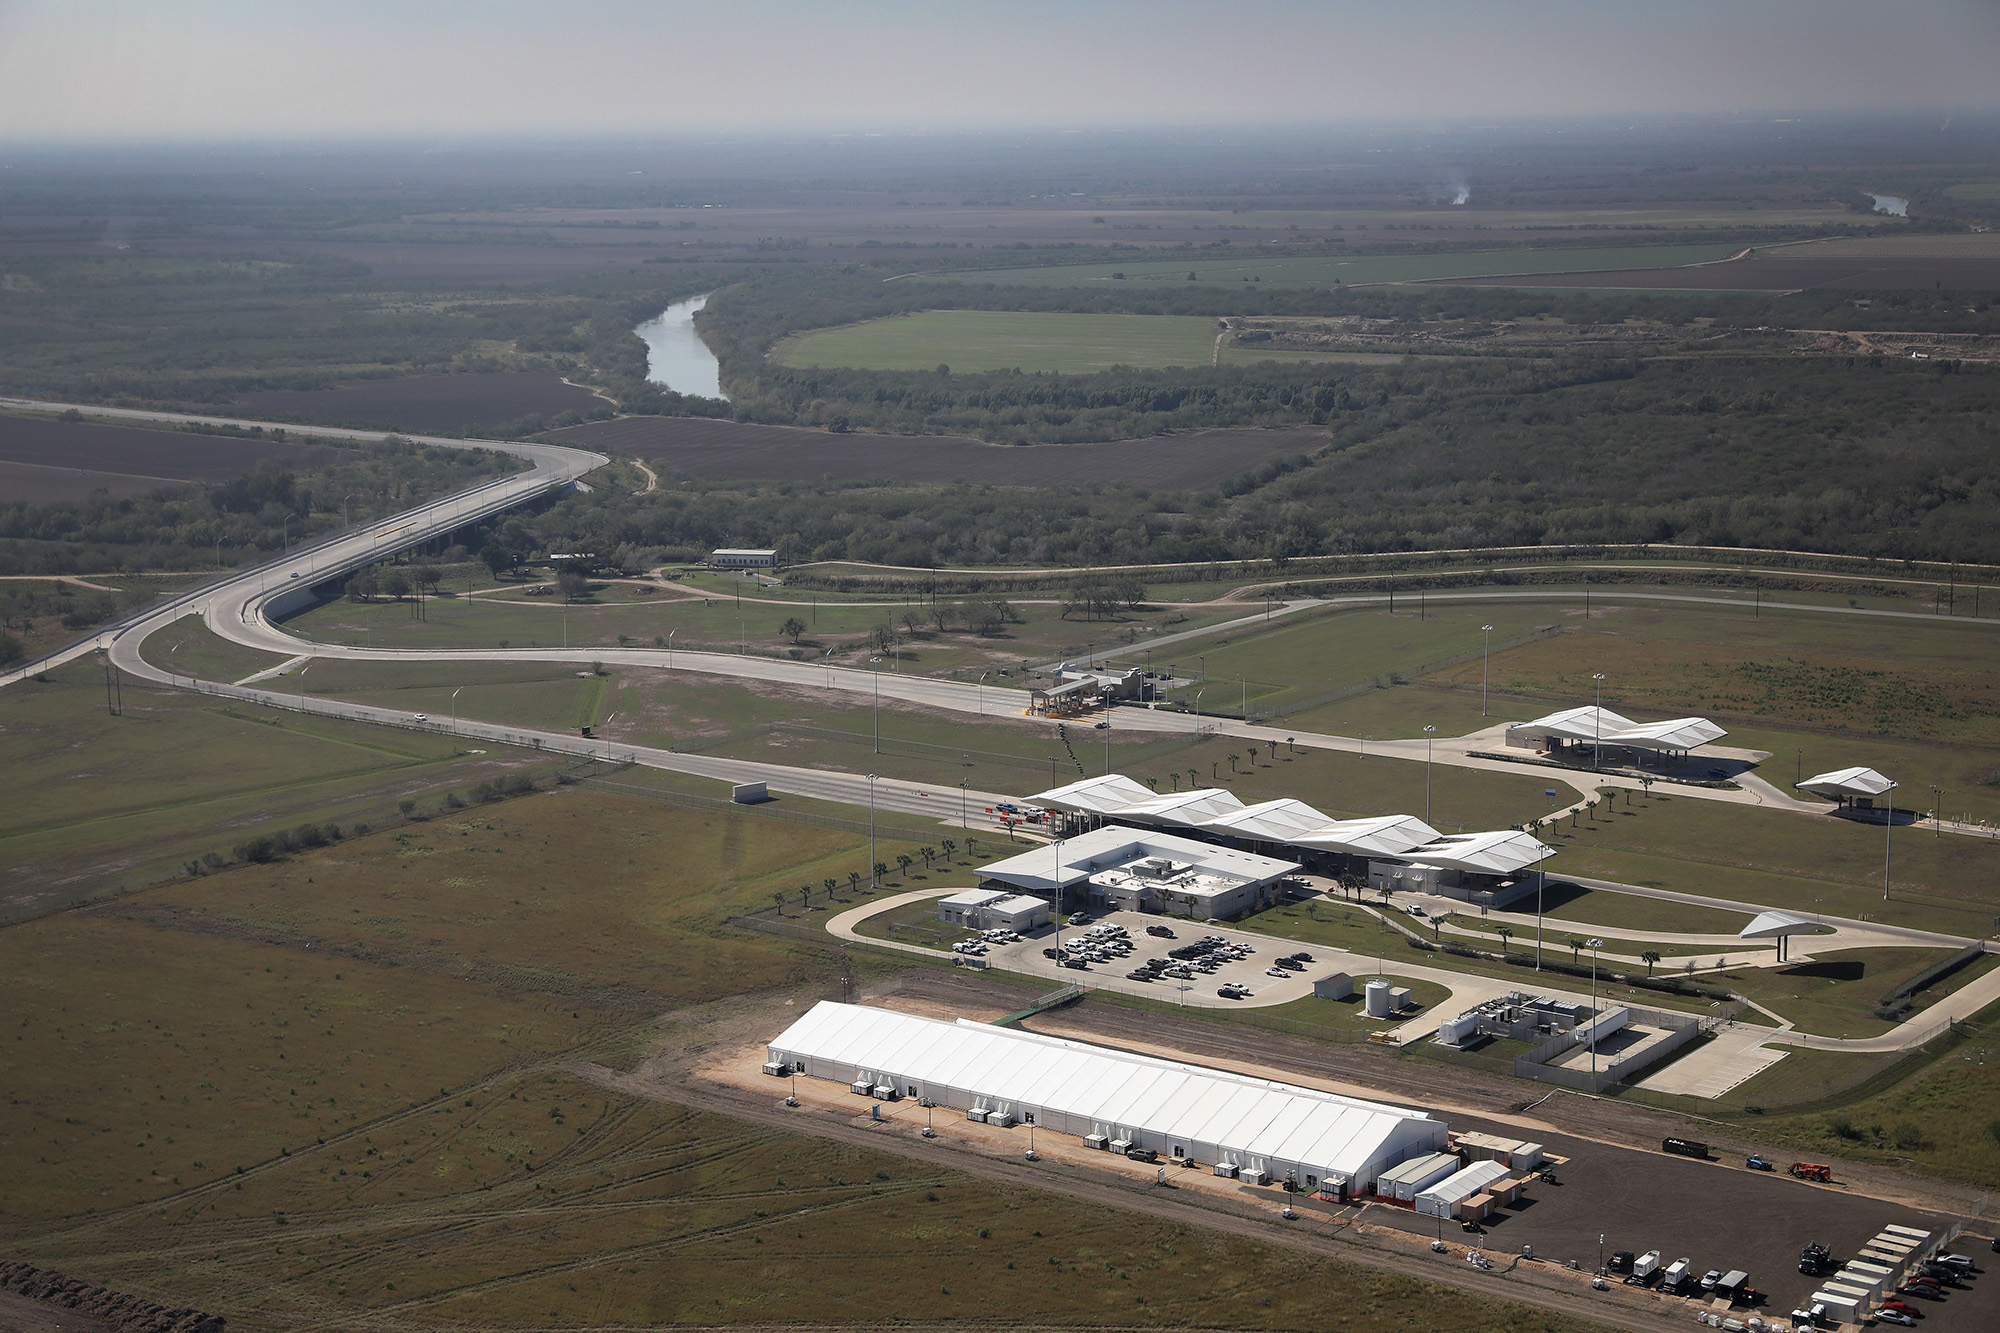 DONNA, TX - JANUARY 03:  A new temporary detention center for immigrants (lower right), awaits new arrivals on January 3, 2017 in Donna, Texas. The center, located near the Donna-Rio Bravo international bridge at the Rio Grande in Donna, Tx, can hold up to 500 people. U.S. Customs and Border Protection built the facility to provide additional temporary housing for unaccompanied children and families, most from Central America, who have been surging across the border seeking asylum from violence and poverty in their countries.  (Photo by John Moore/Getty Images)